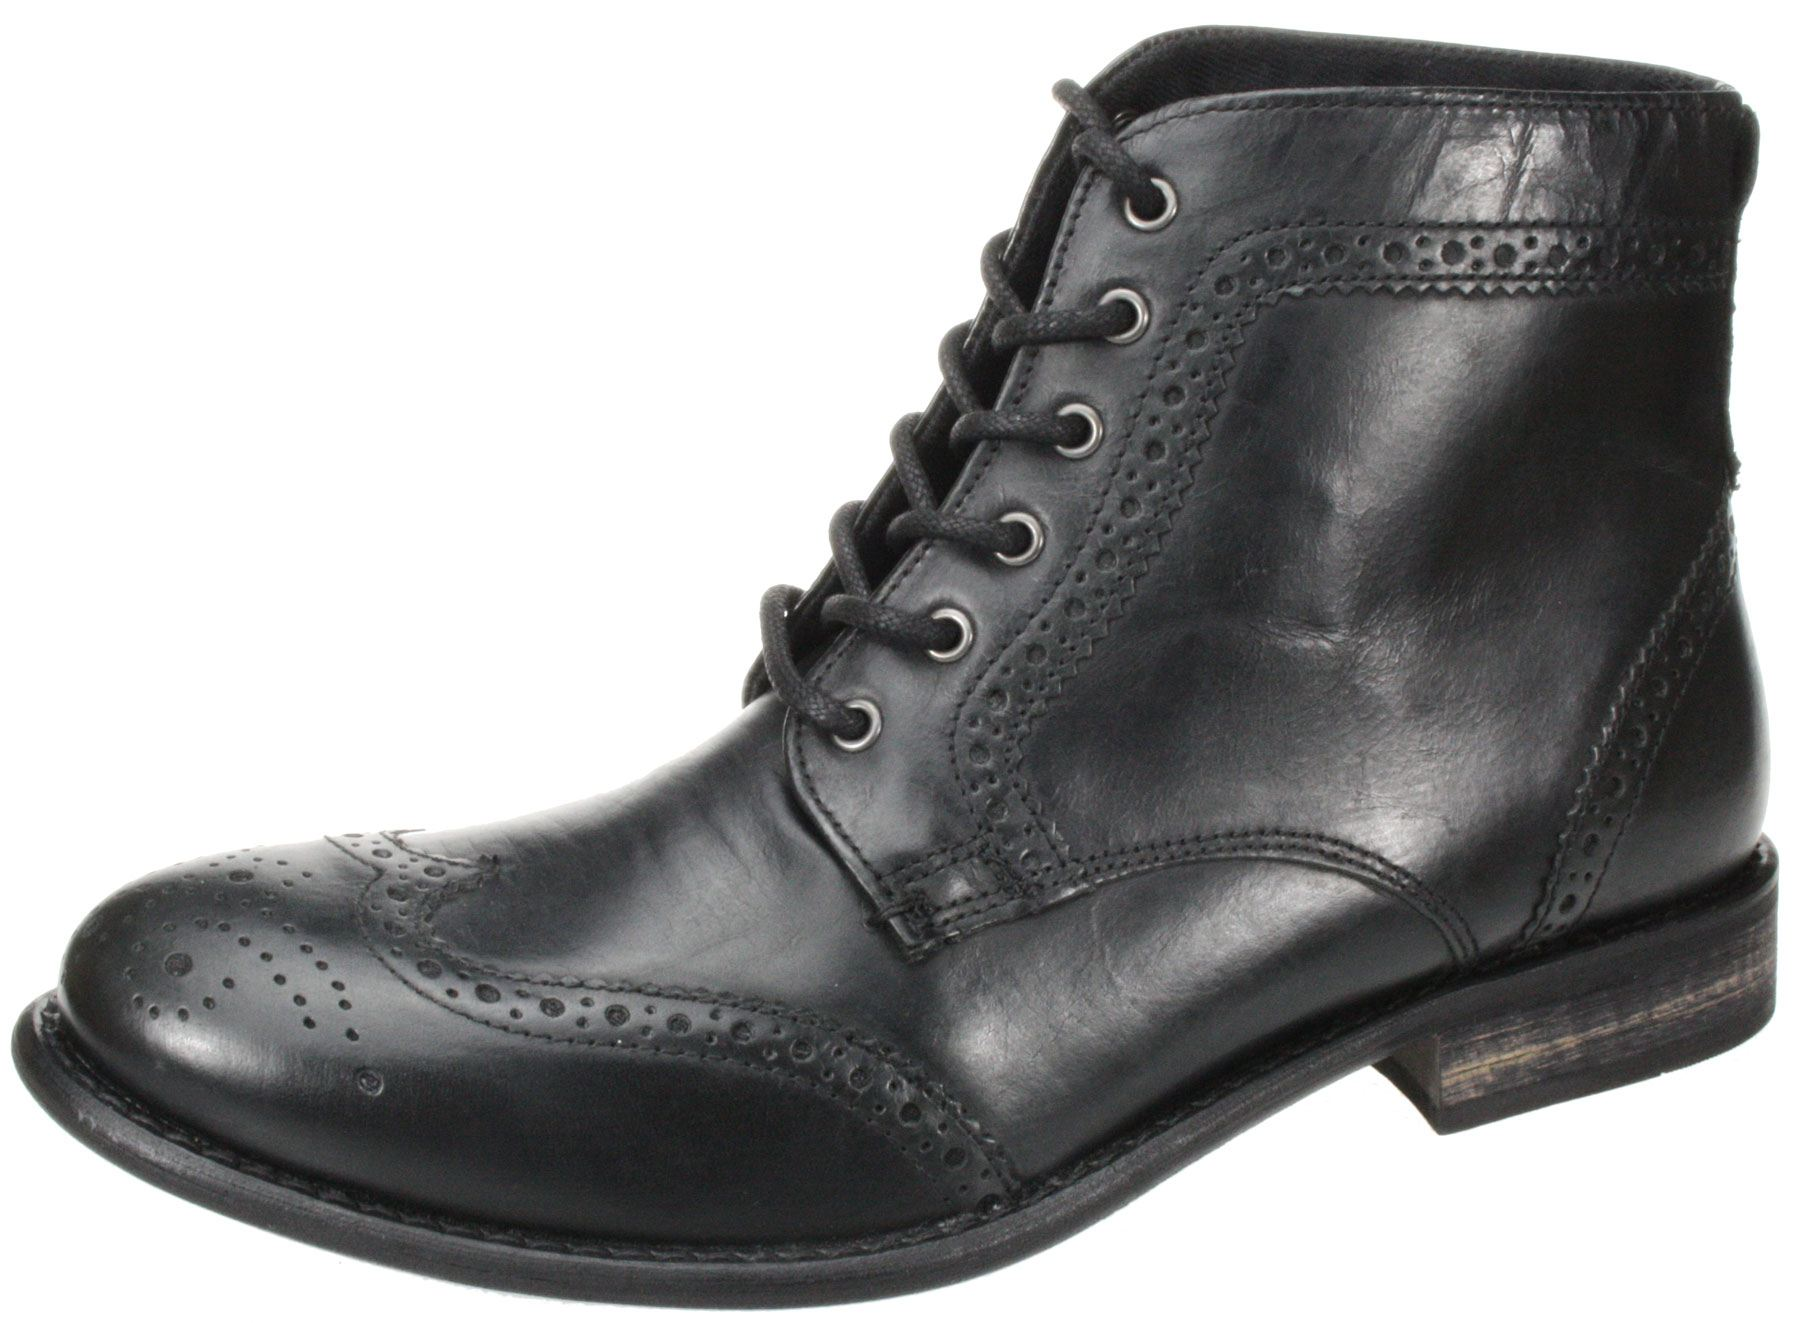 Mens Red tape Nant black brown lace up leather brogue ankle boots